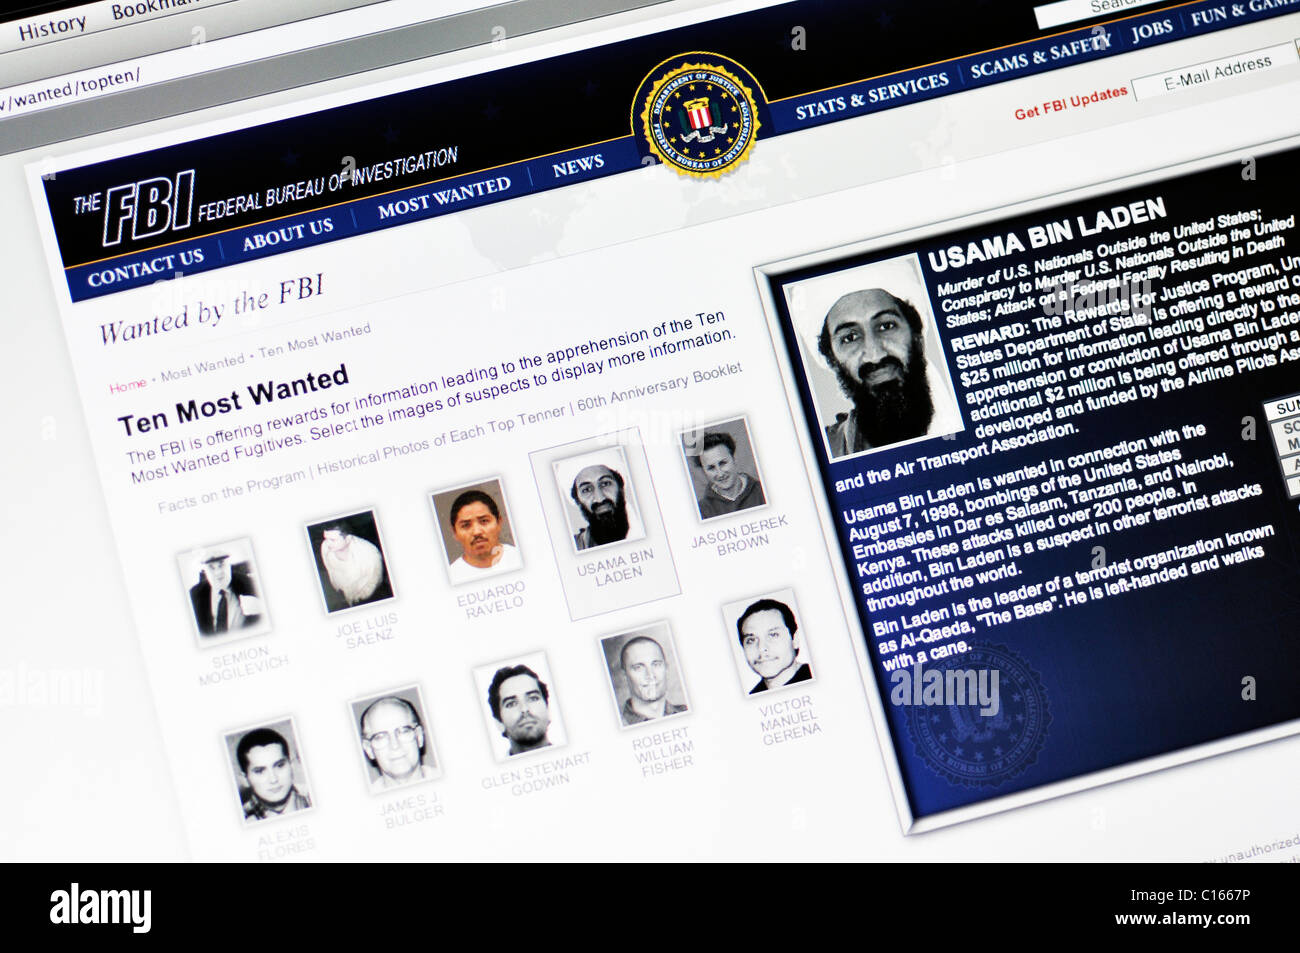 FBI most wanted list website - Stock Image